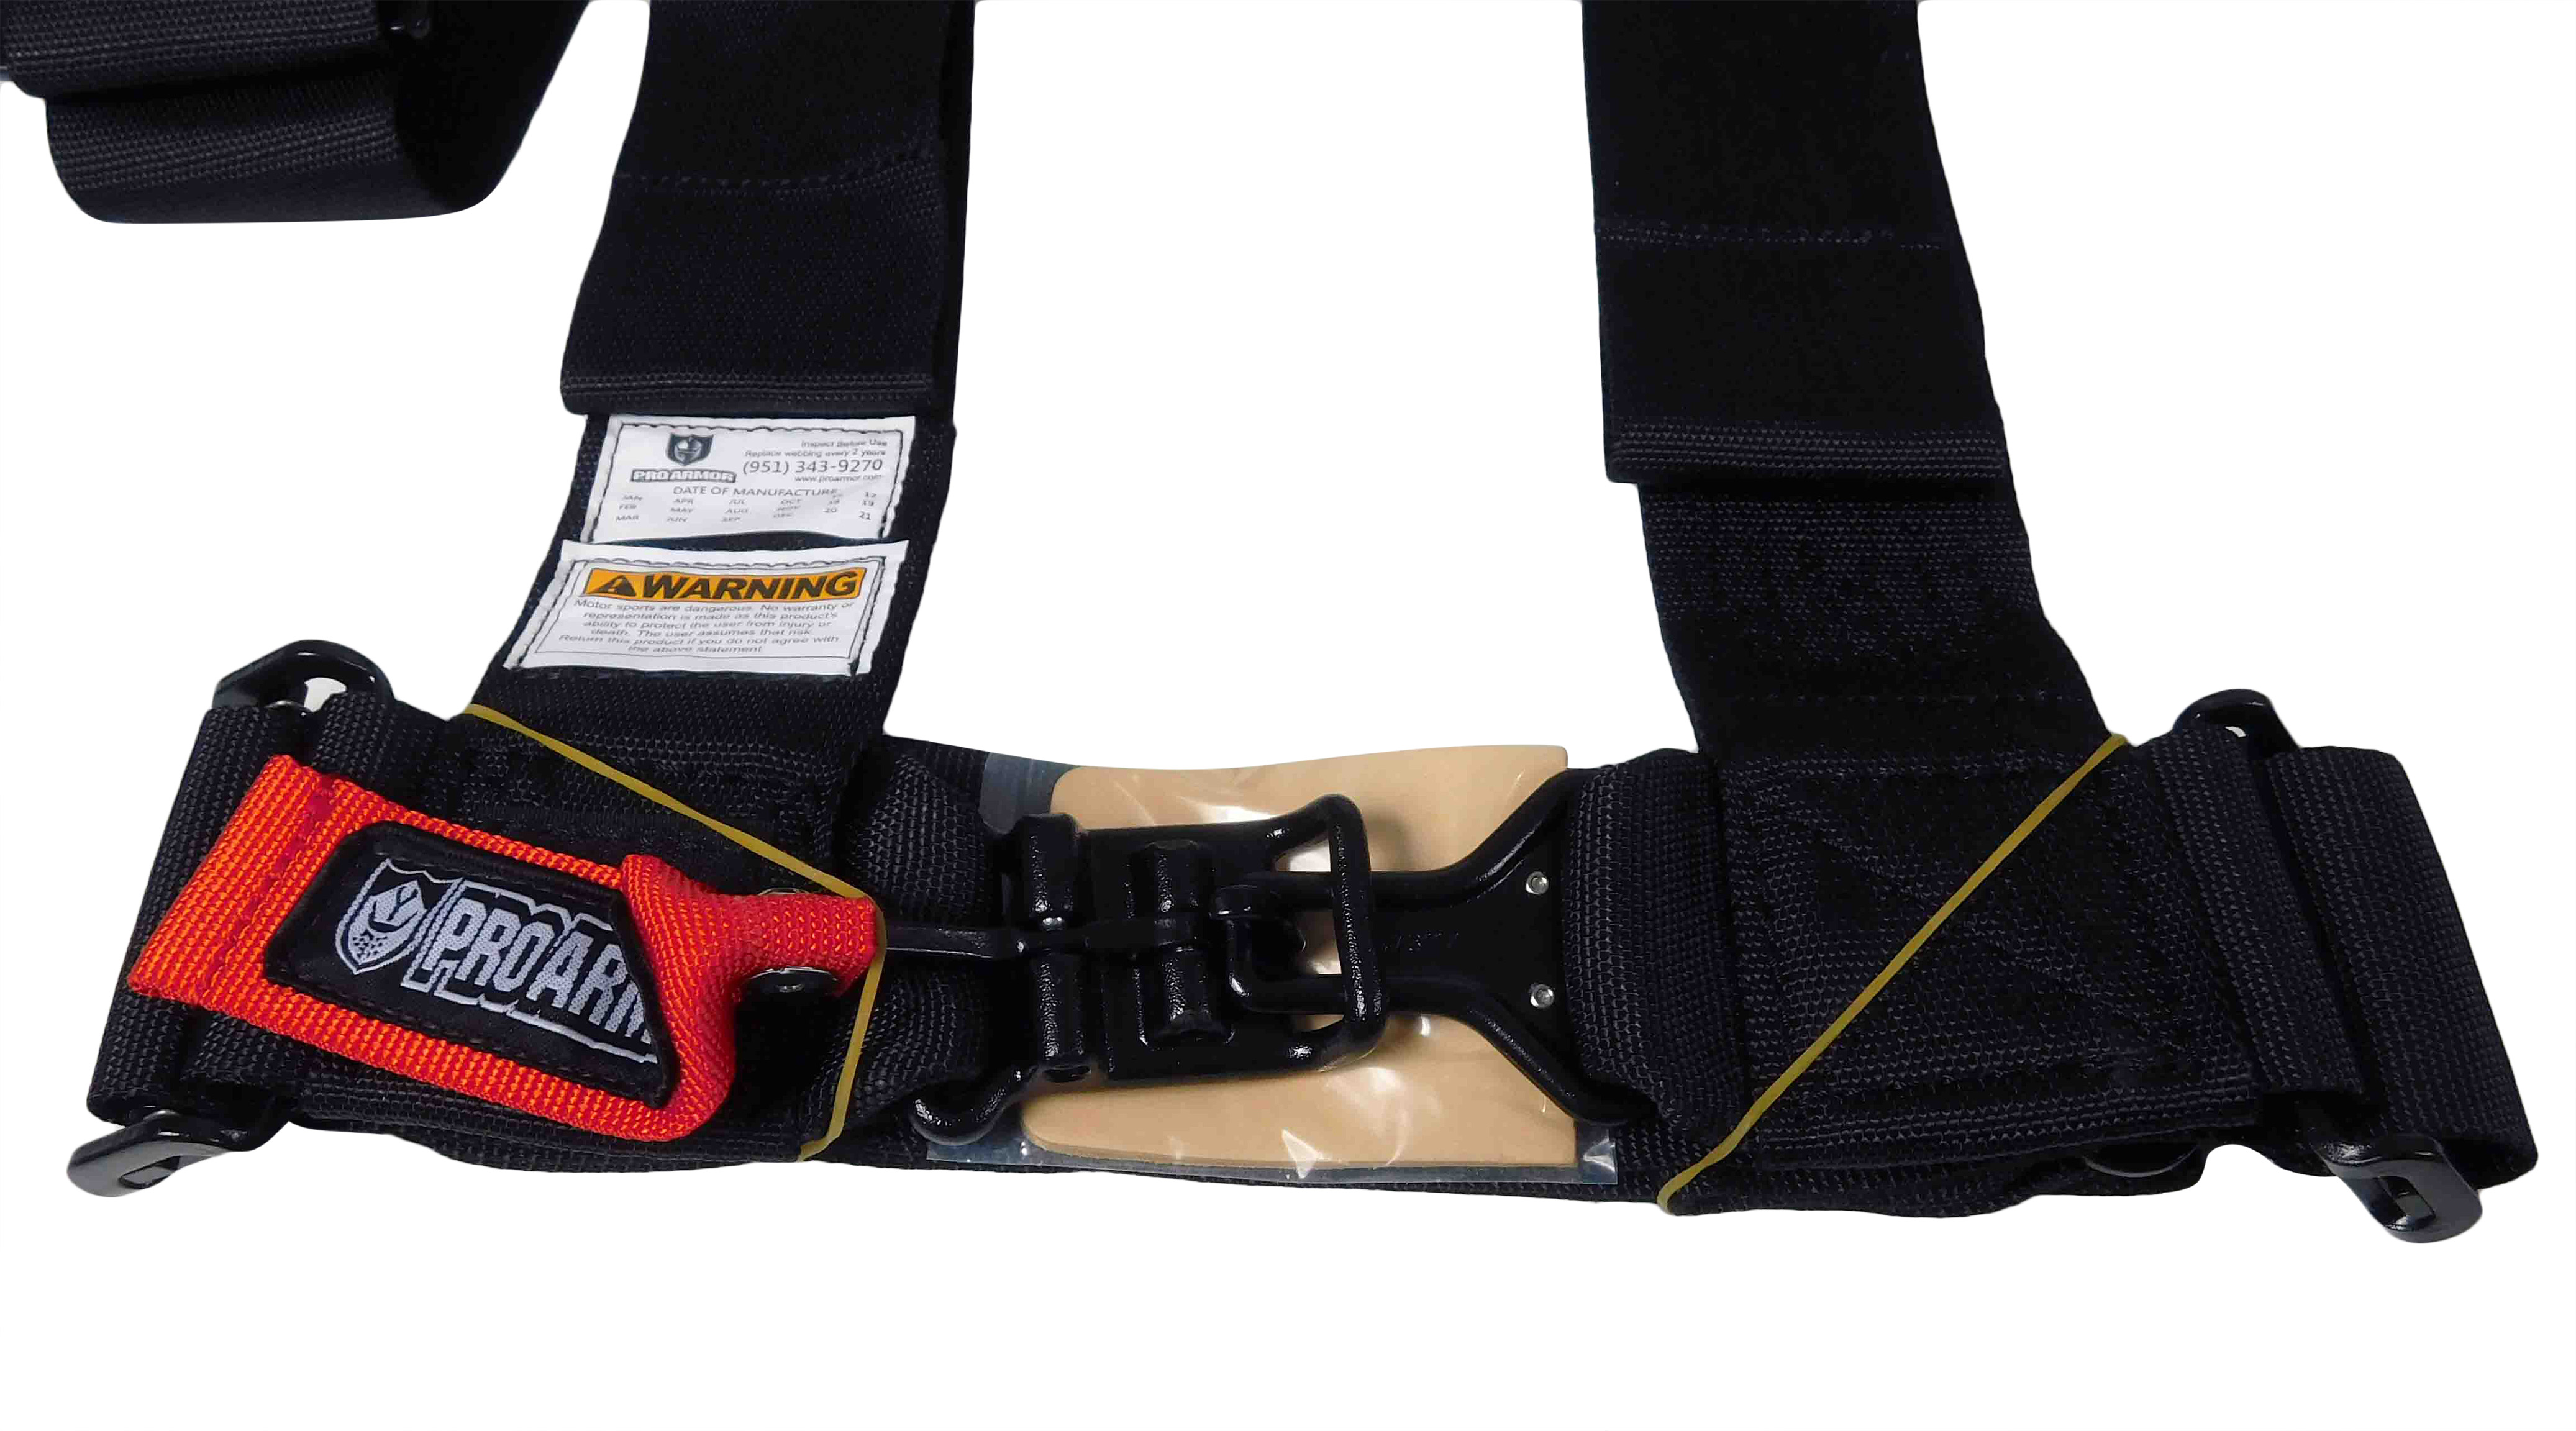 Pro-Armor-A115230-x2-5-Point-3inch-Harness-with-Sewn-in-Pads-Black-2-PACK-image-4